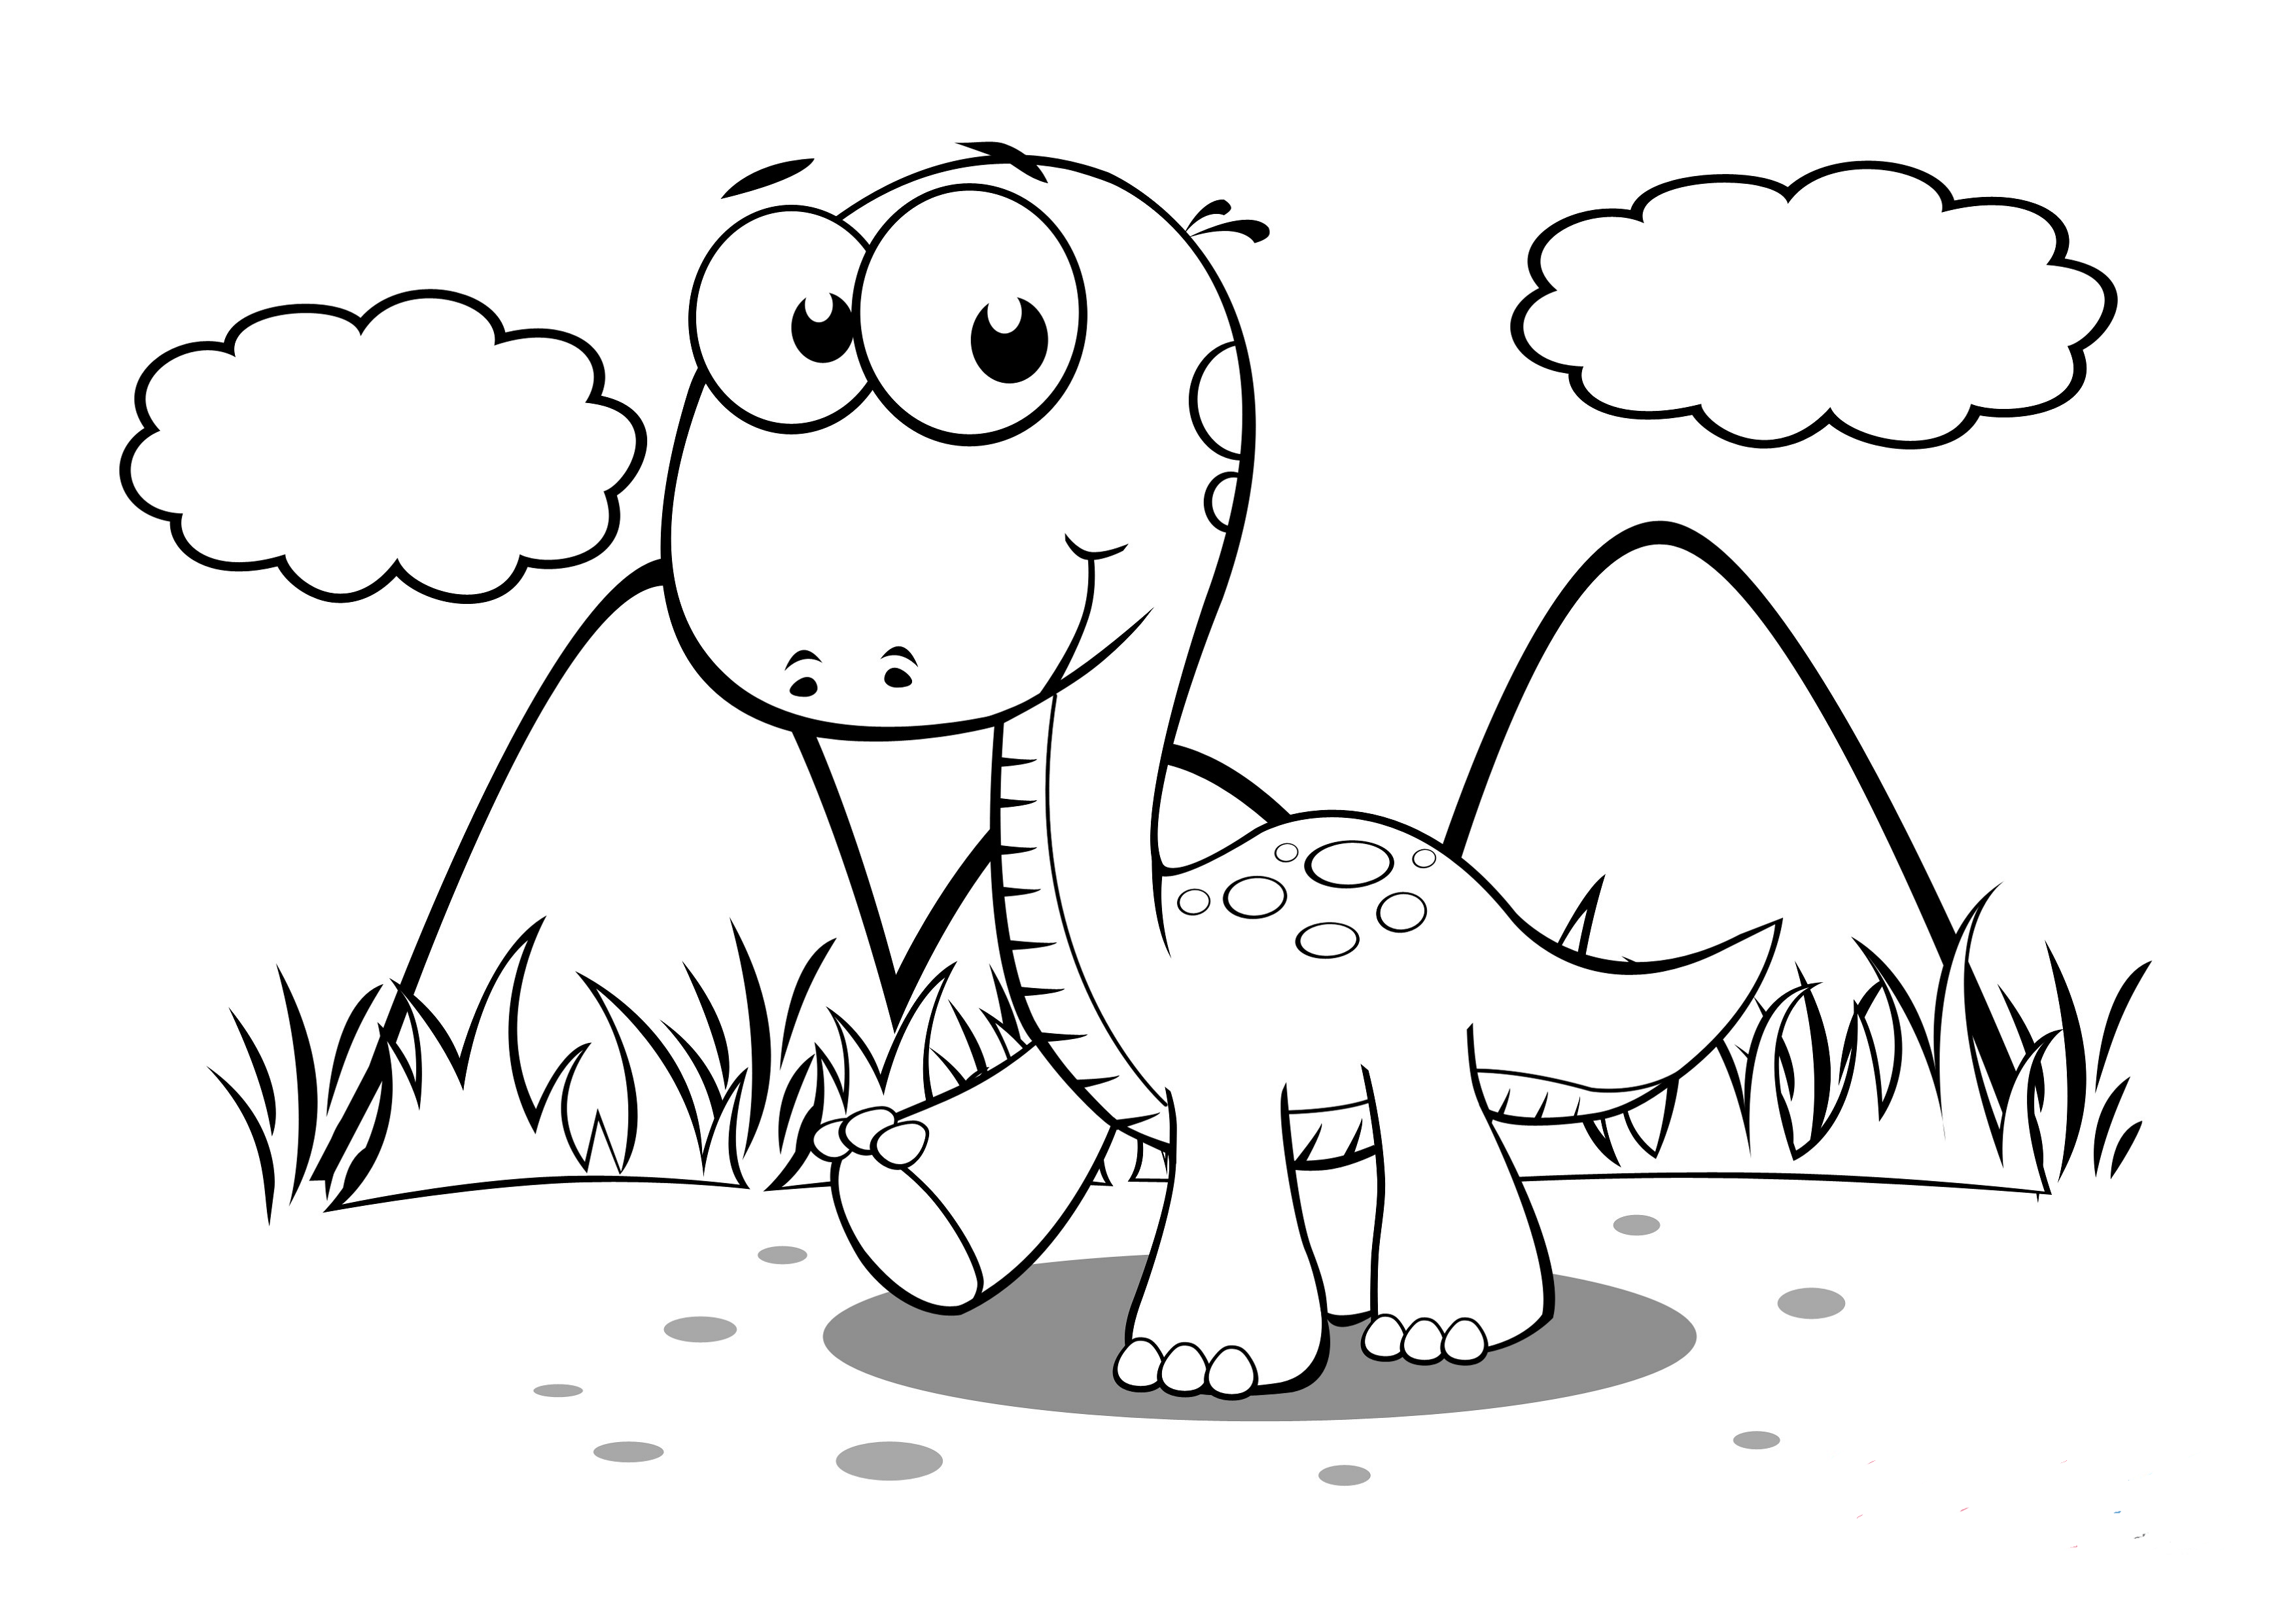 baby dinosaur coloring pages cool baby dinosaur forest coloring page hayvanlar dinosaur baby pages coloring